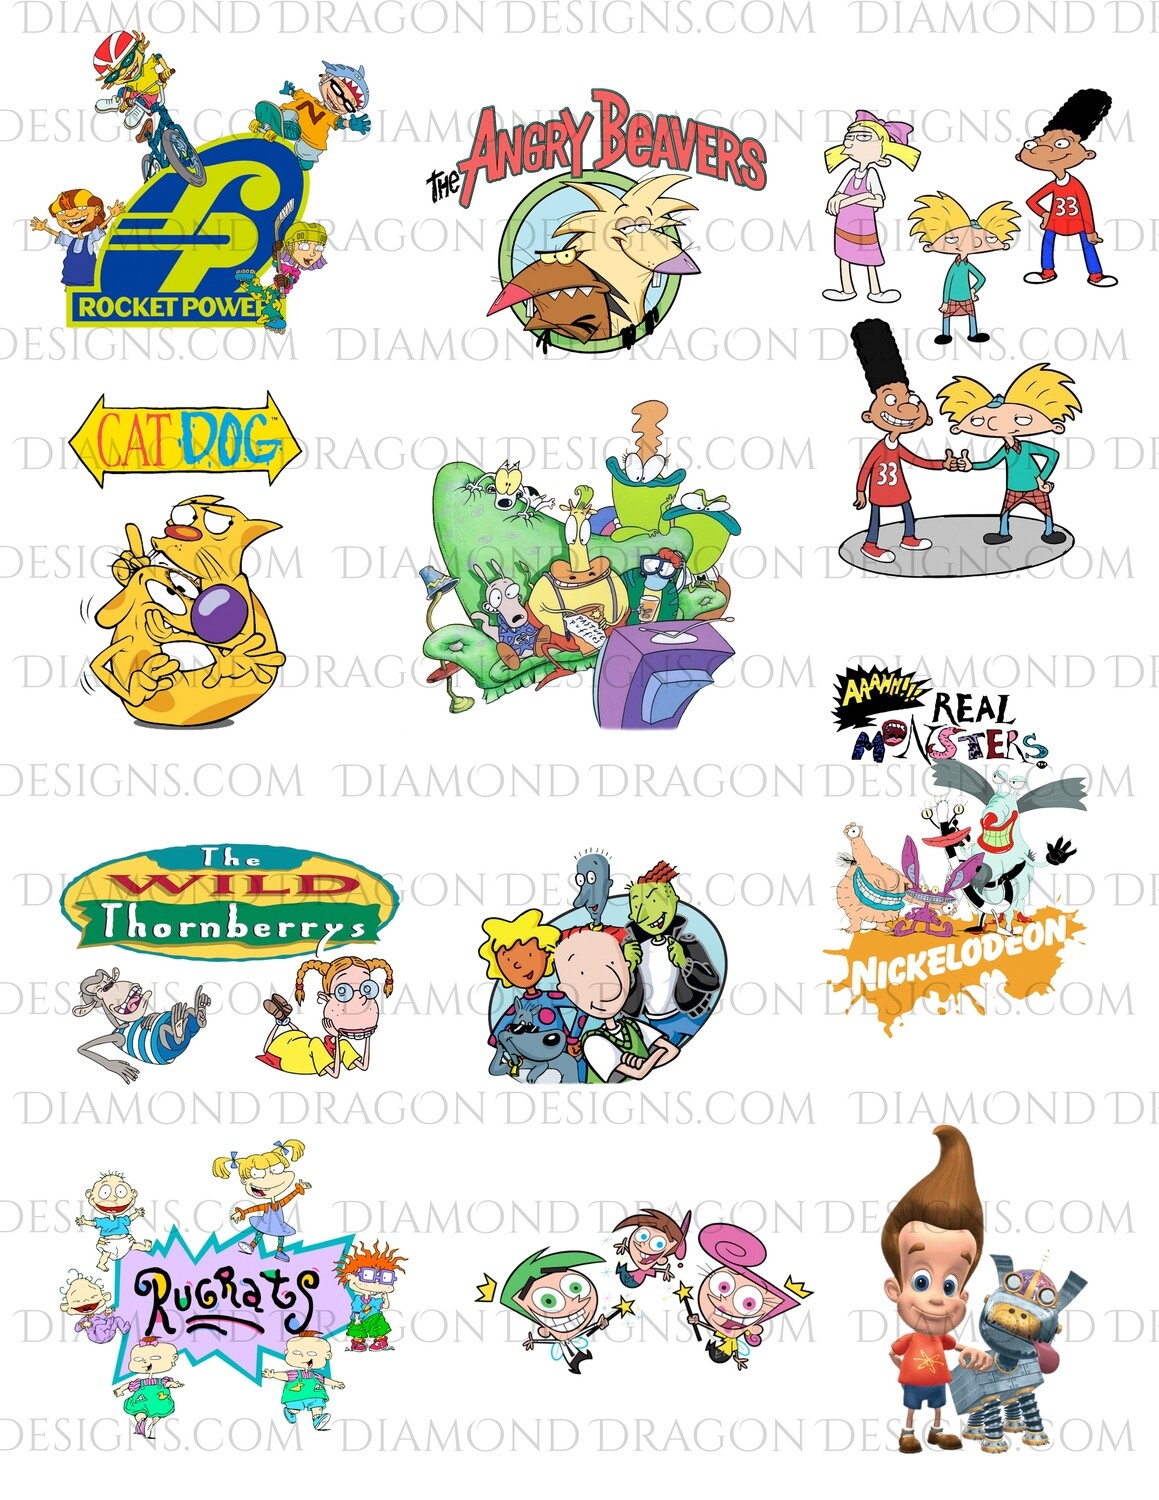 TV Shows - 90s Cartoons, Full Page, Digital Image